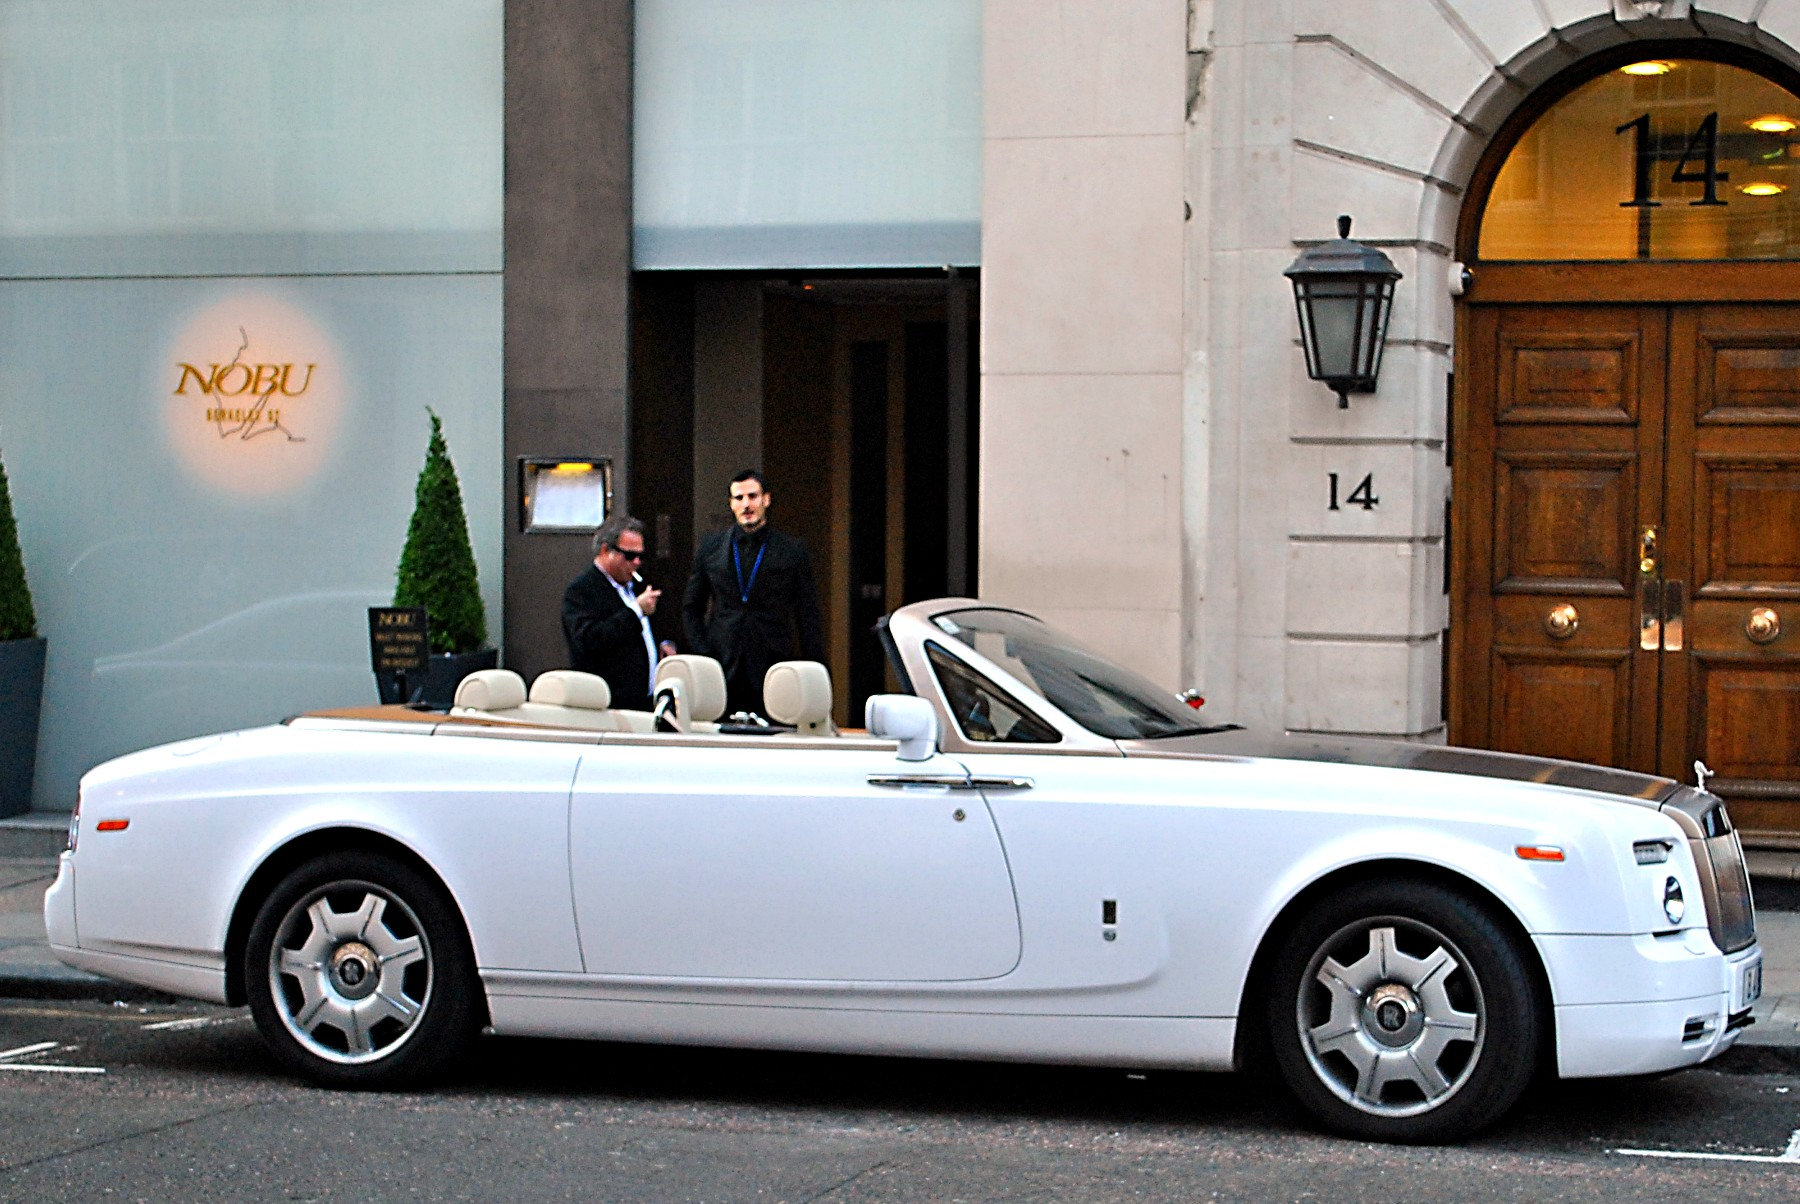 2014 Rolls royce Phantom Drophead Coupe #15